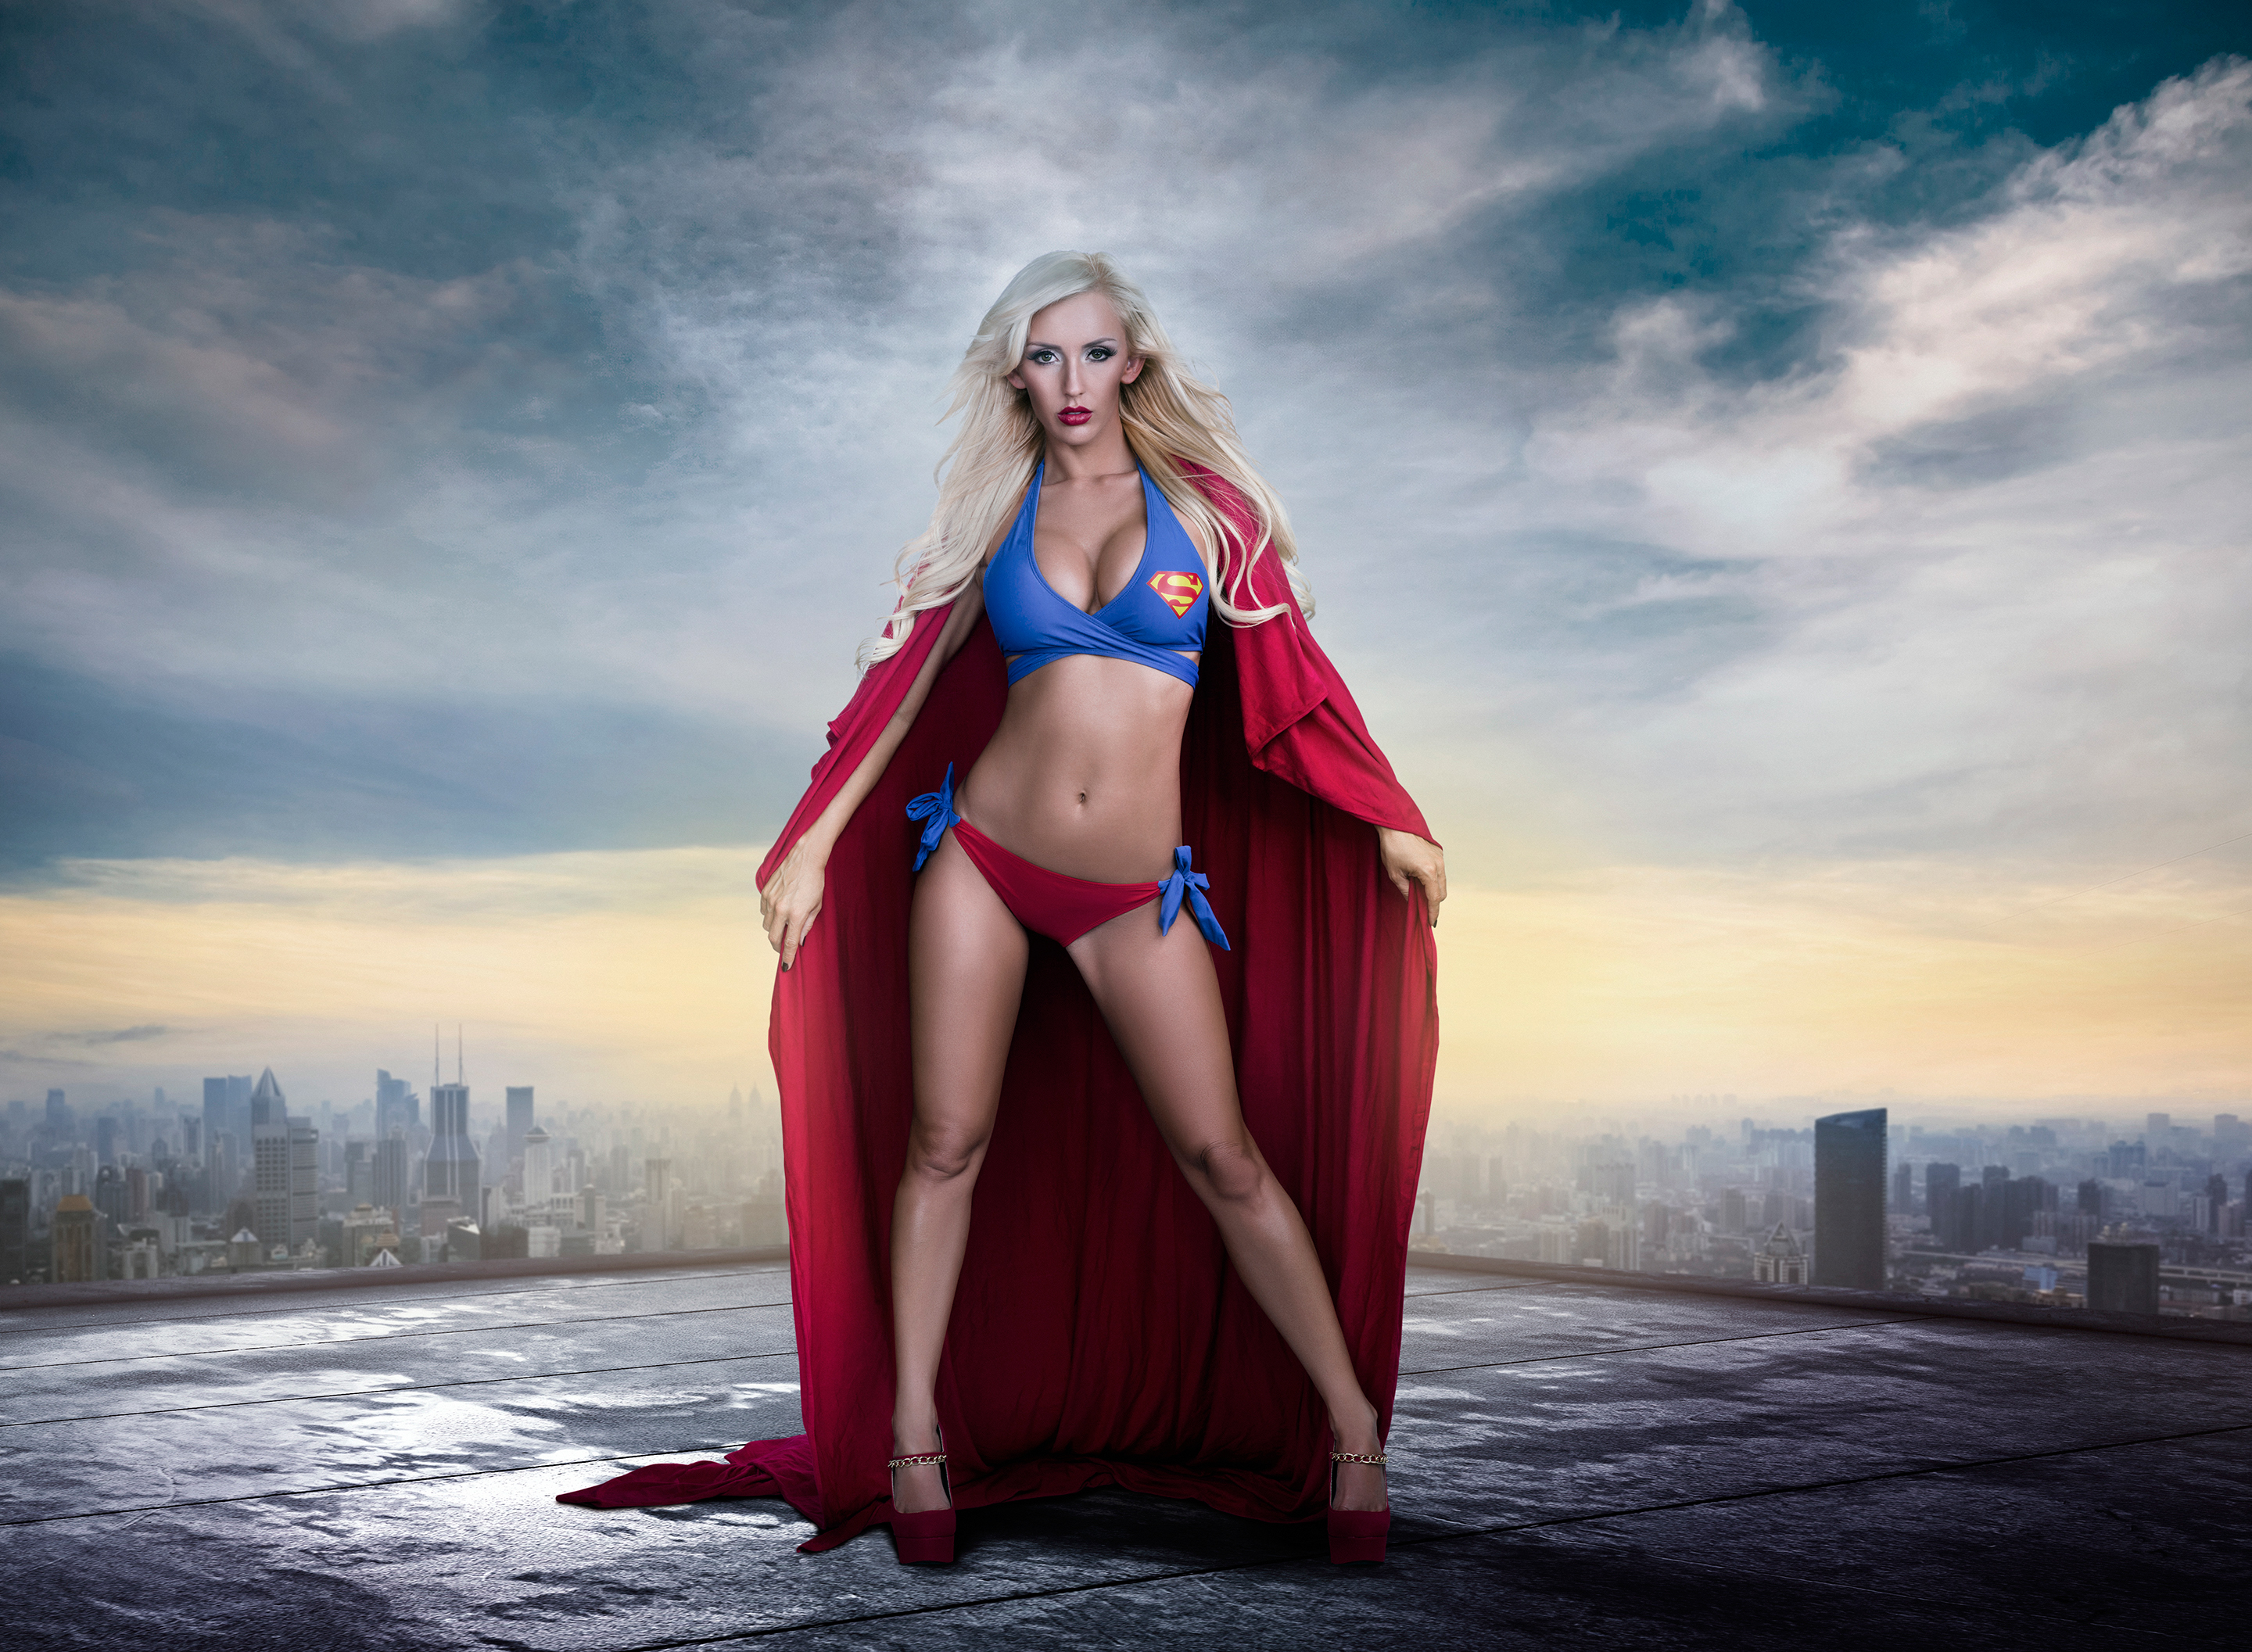 Indian Girl Wallpapers For Desktop Sketch 2048x1152 Supergirl Cosplay 2048x1152 Resolution Hd 4k